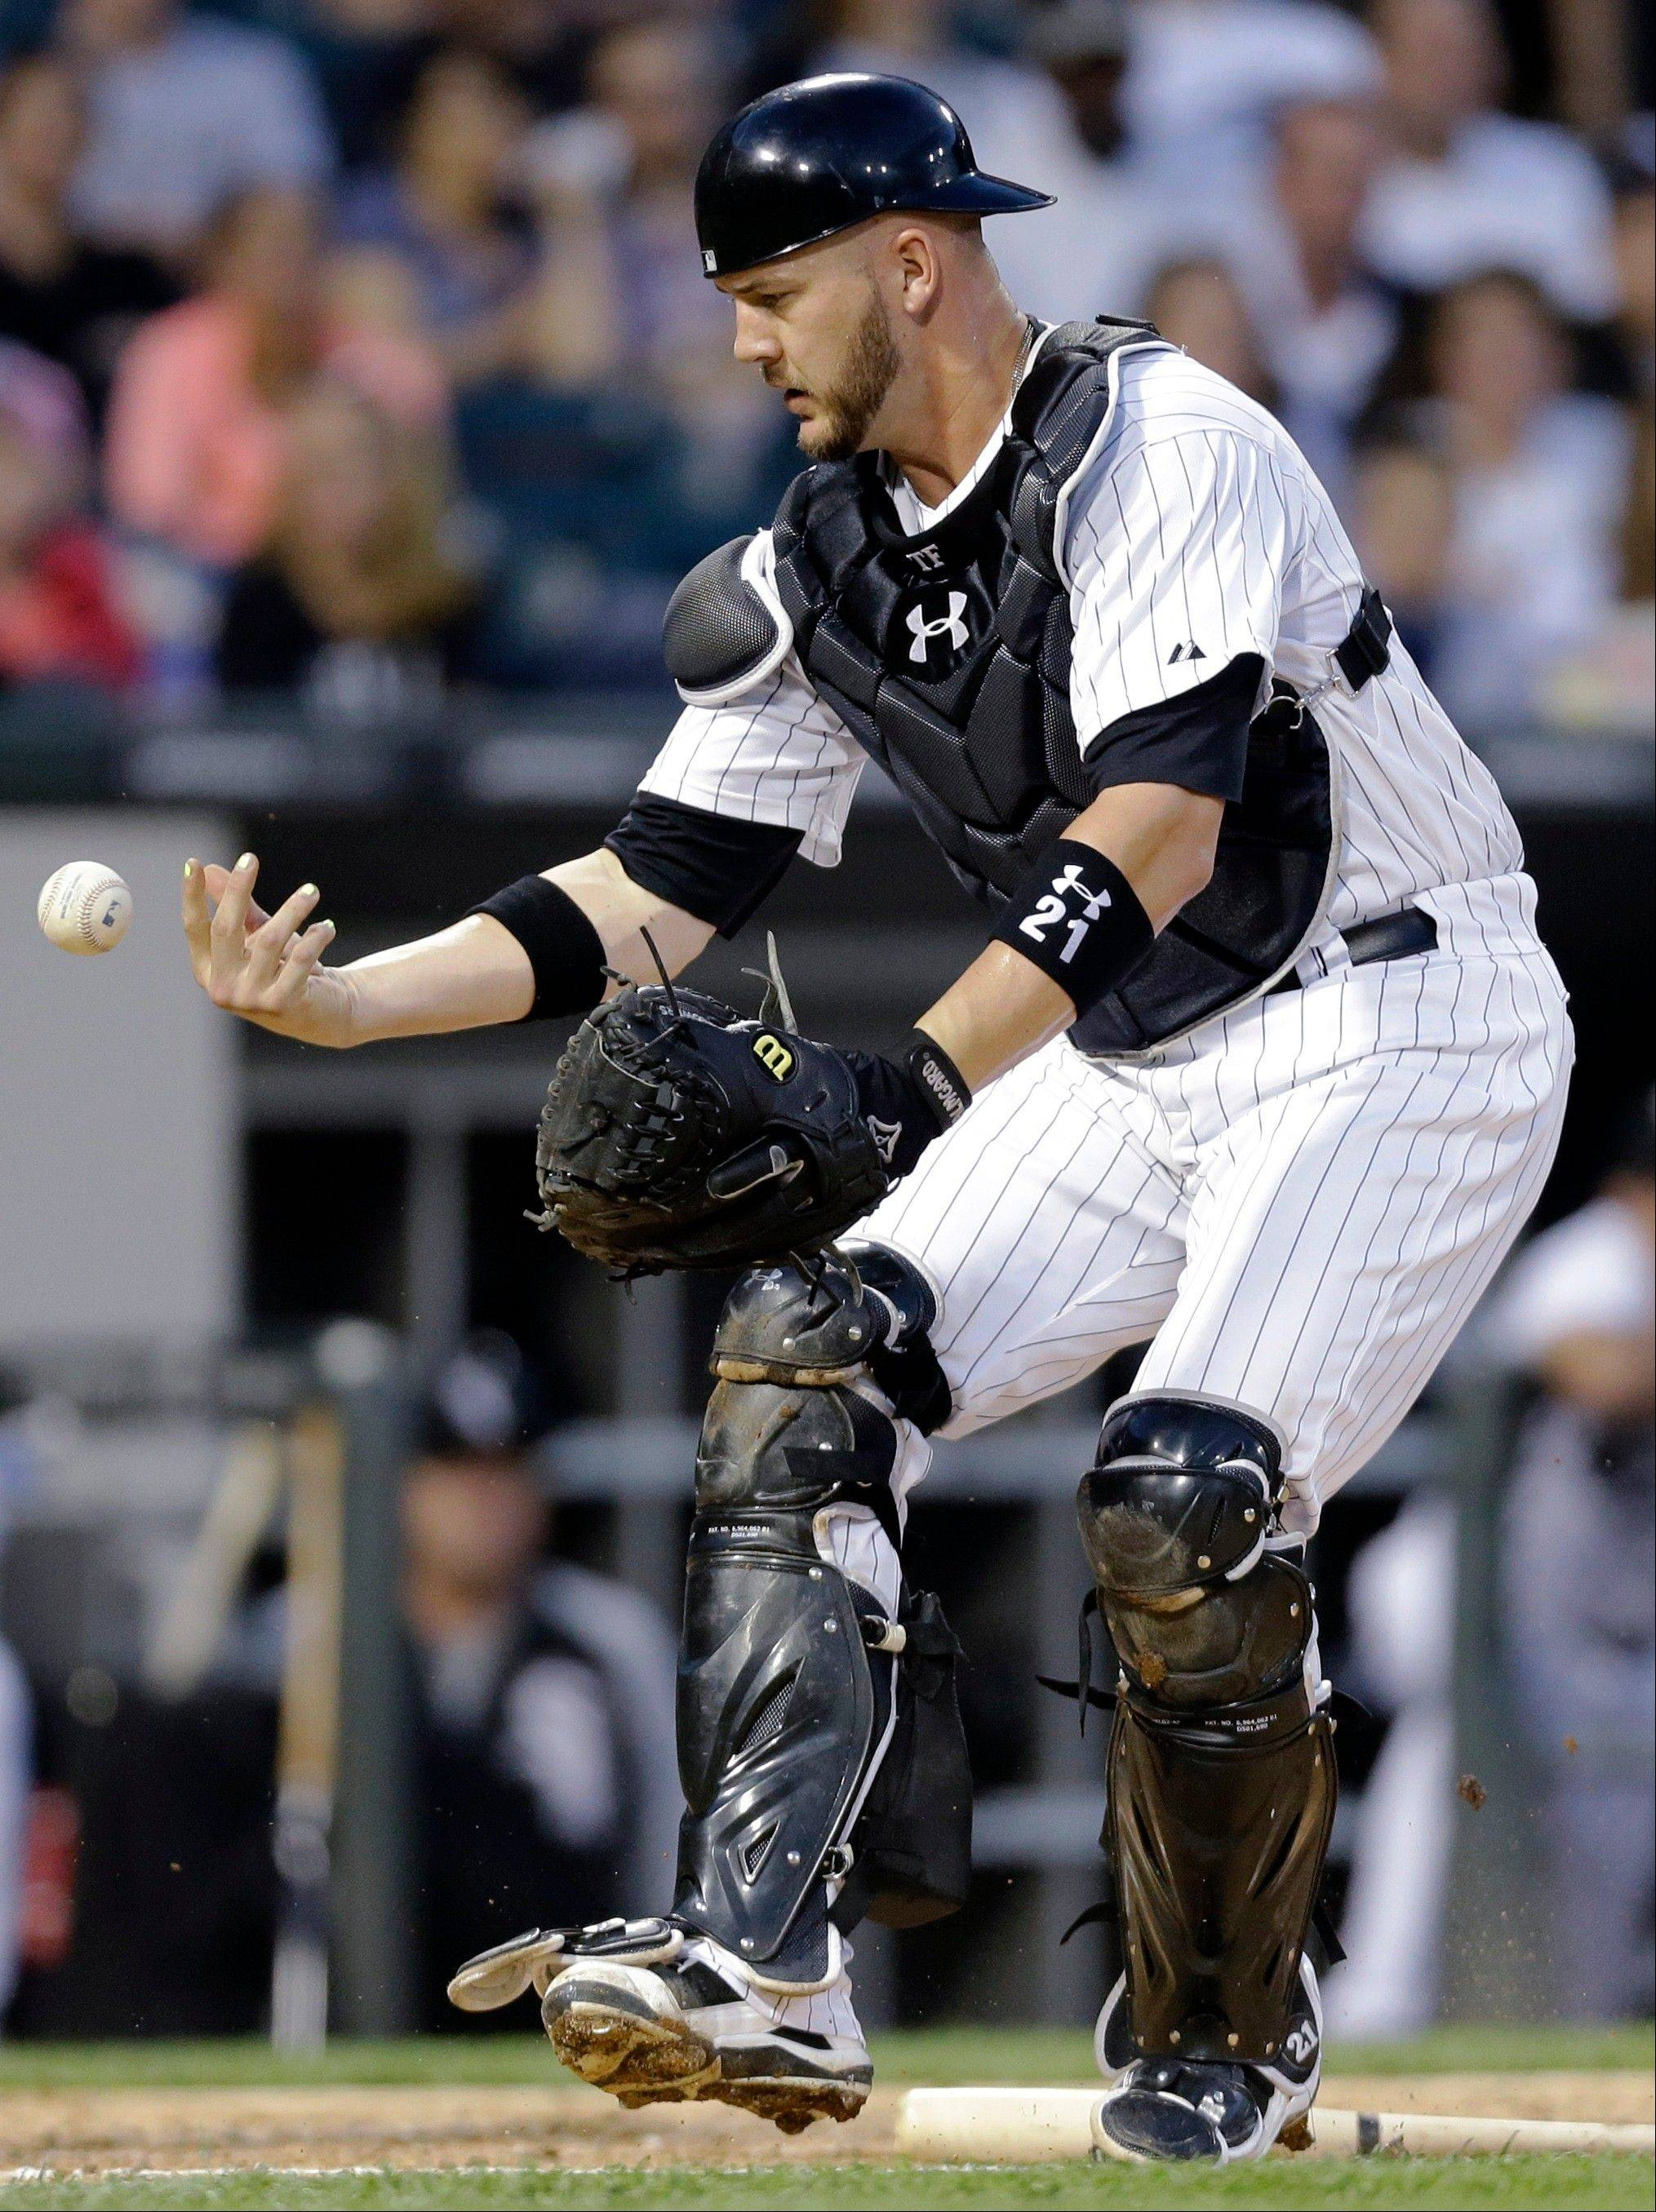 White Sox catcher Tyler Flowers can't make the play on a foul hit by New York Mets' Omar Quintanilla during the fifth inning of an interleague baseball game Wednesday, June 26, 2013, in Chicago. Quintanilla grounded out on the at-bat. (AP Photo/Nam Y. Huh)